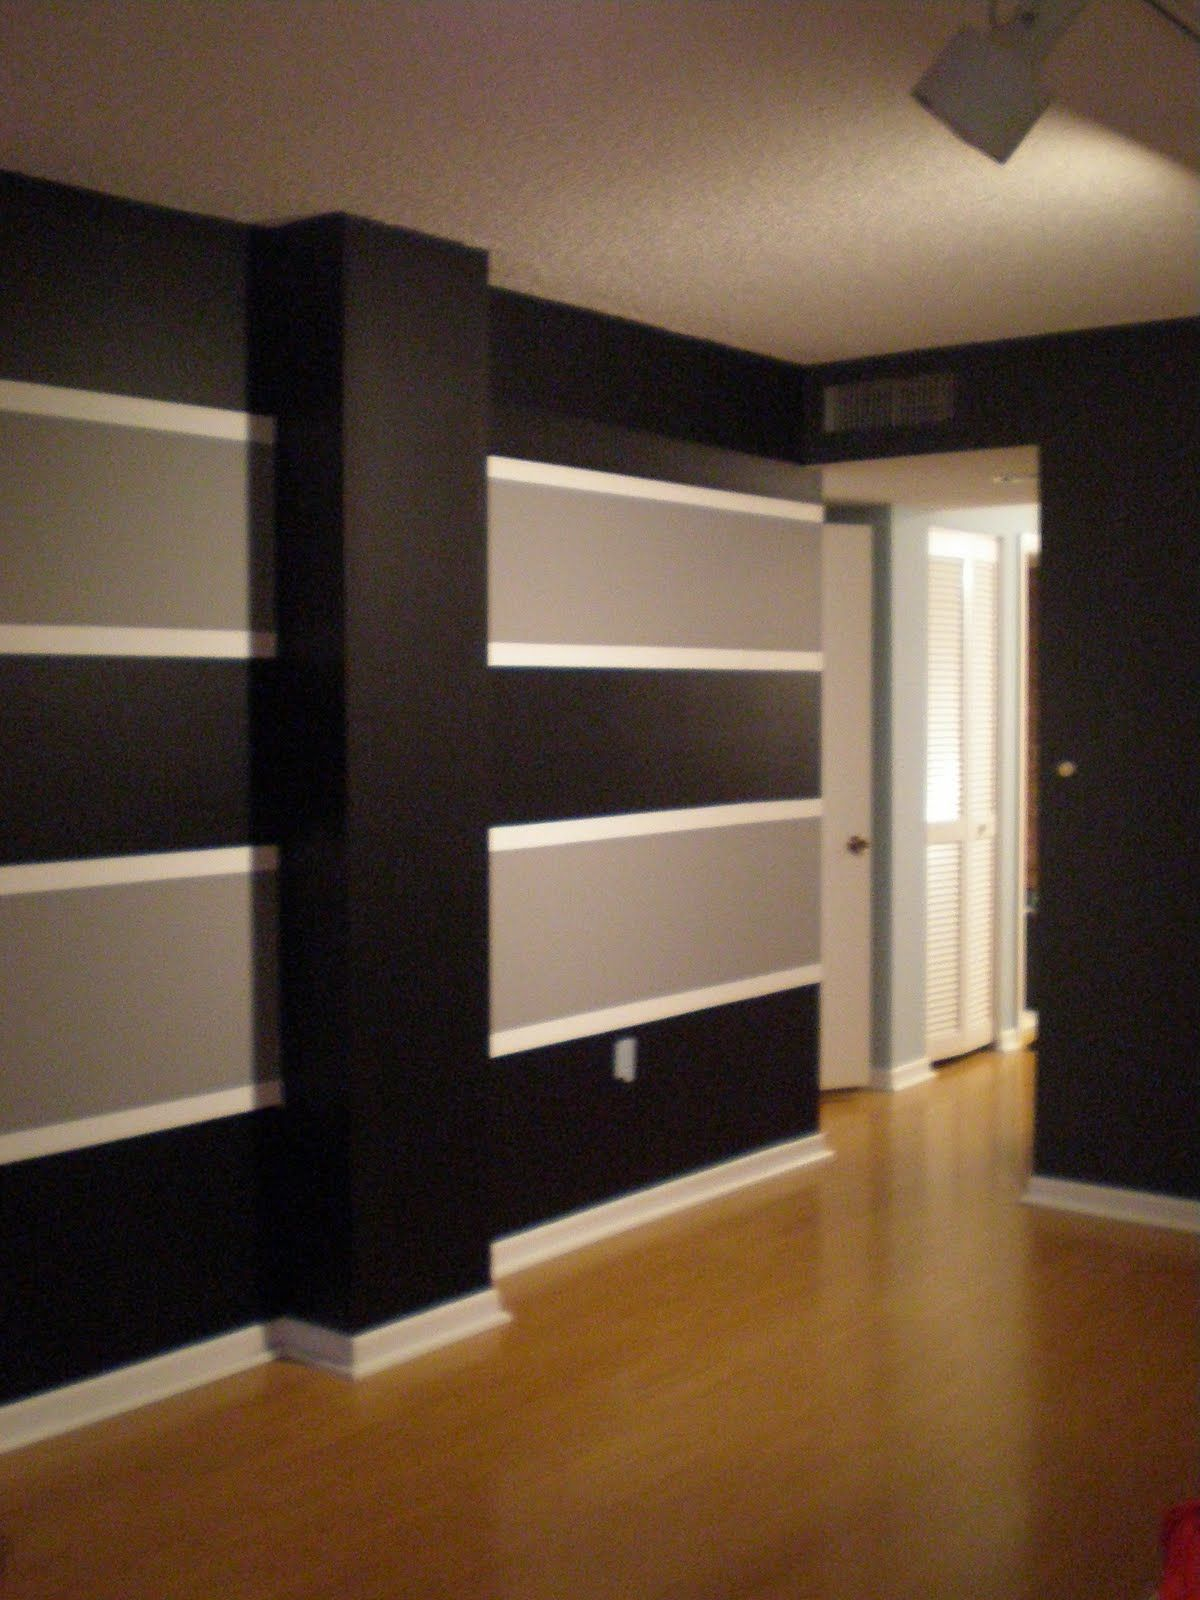 Paint stripes on wall ideas painting stripes for Painting stripes on walls in kids room